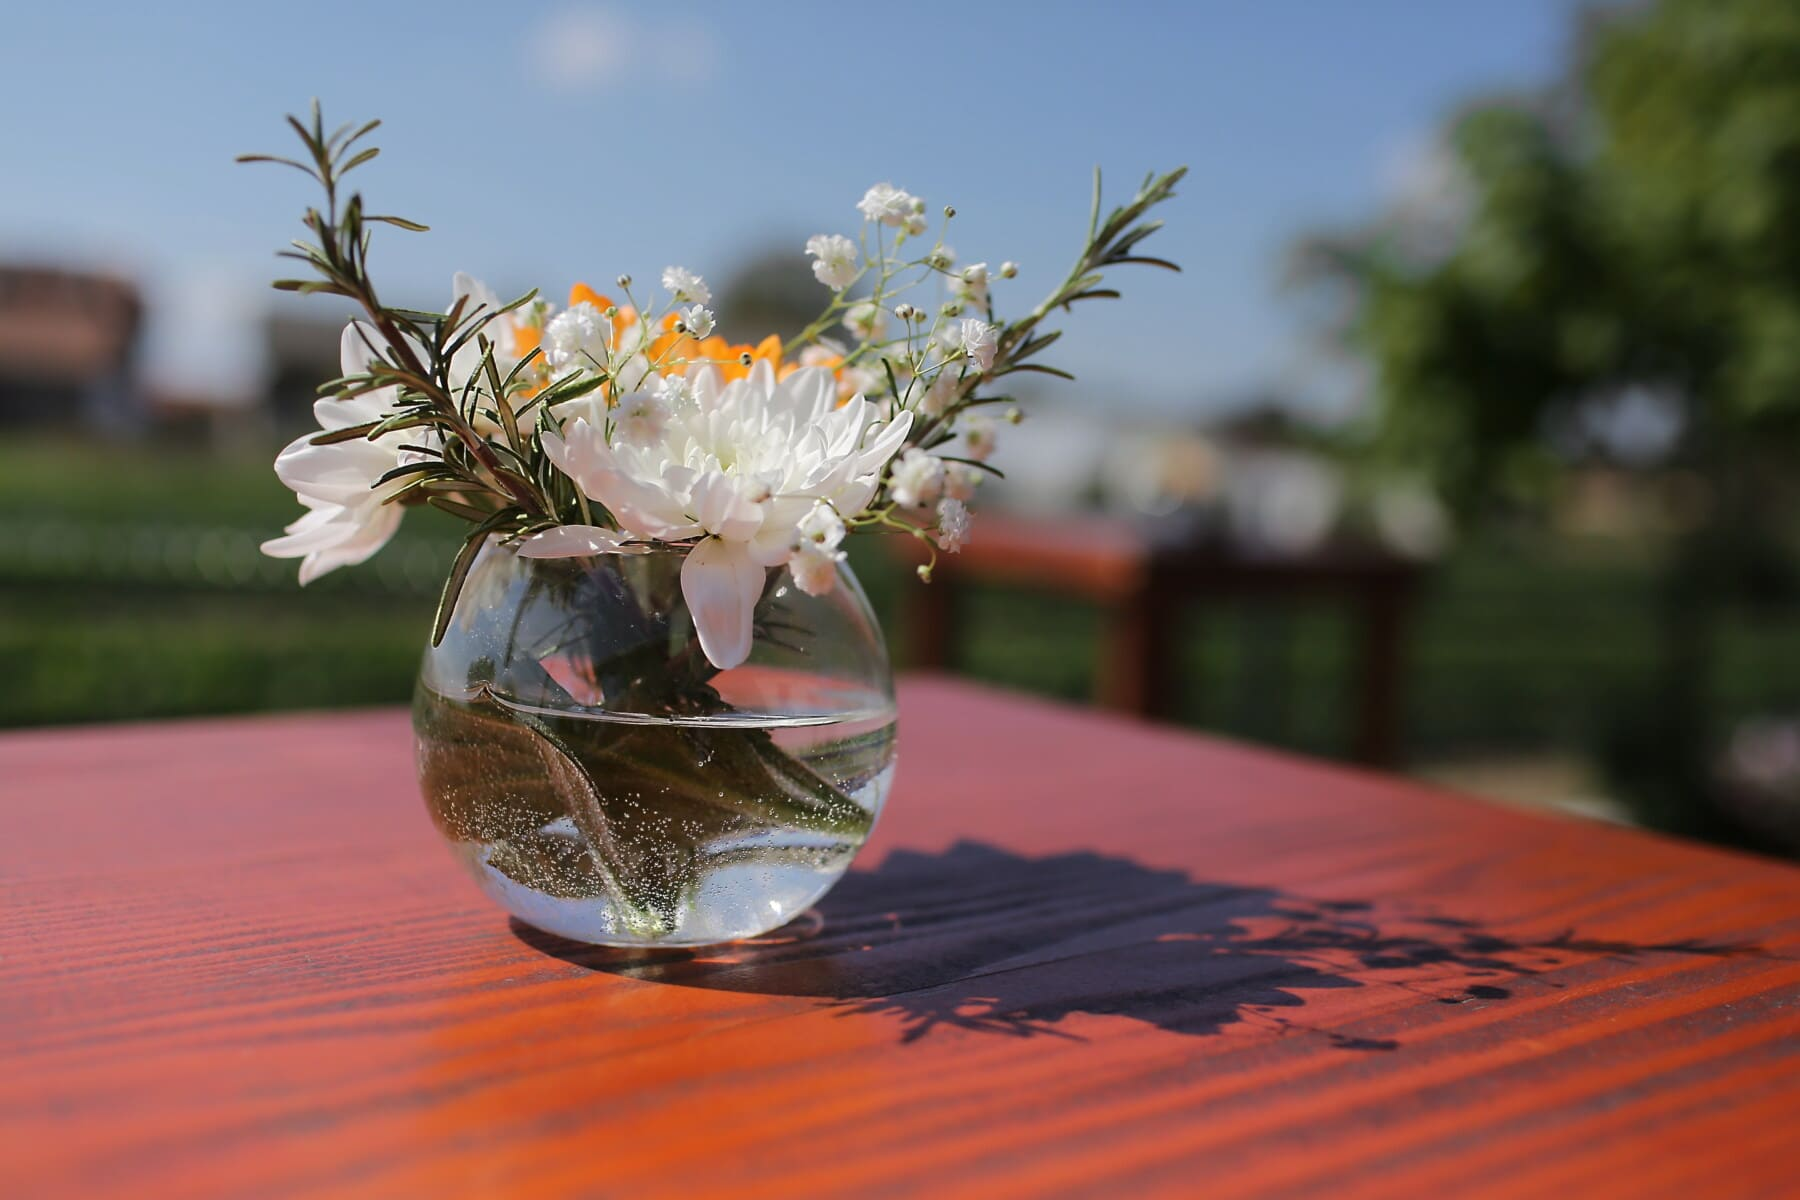 bowl, round, crystal, vase, rosemary, water, flowers, nature, flower, still life